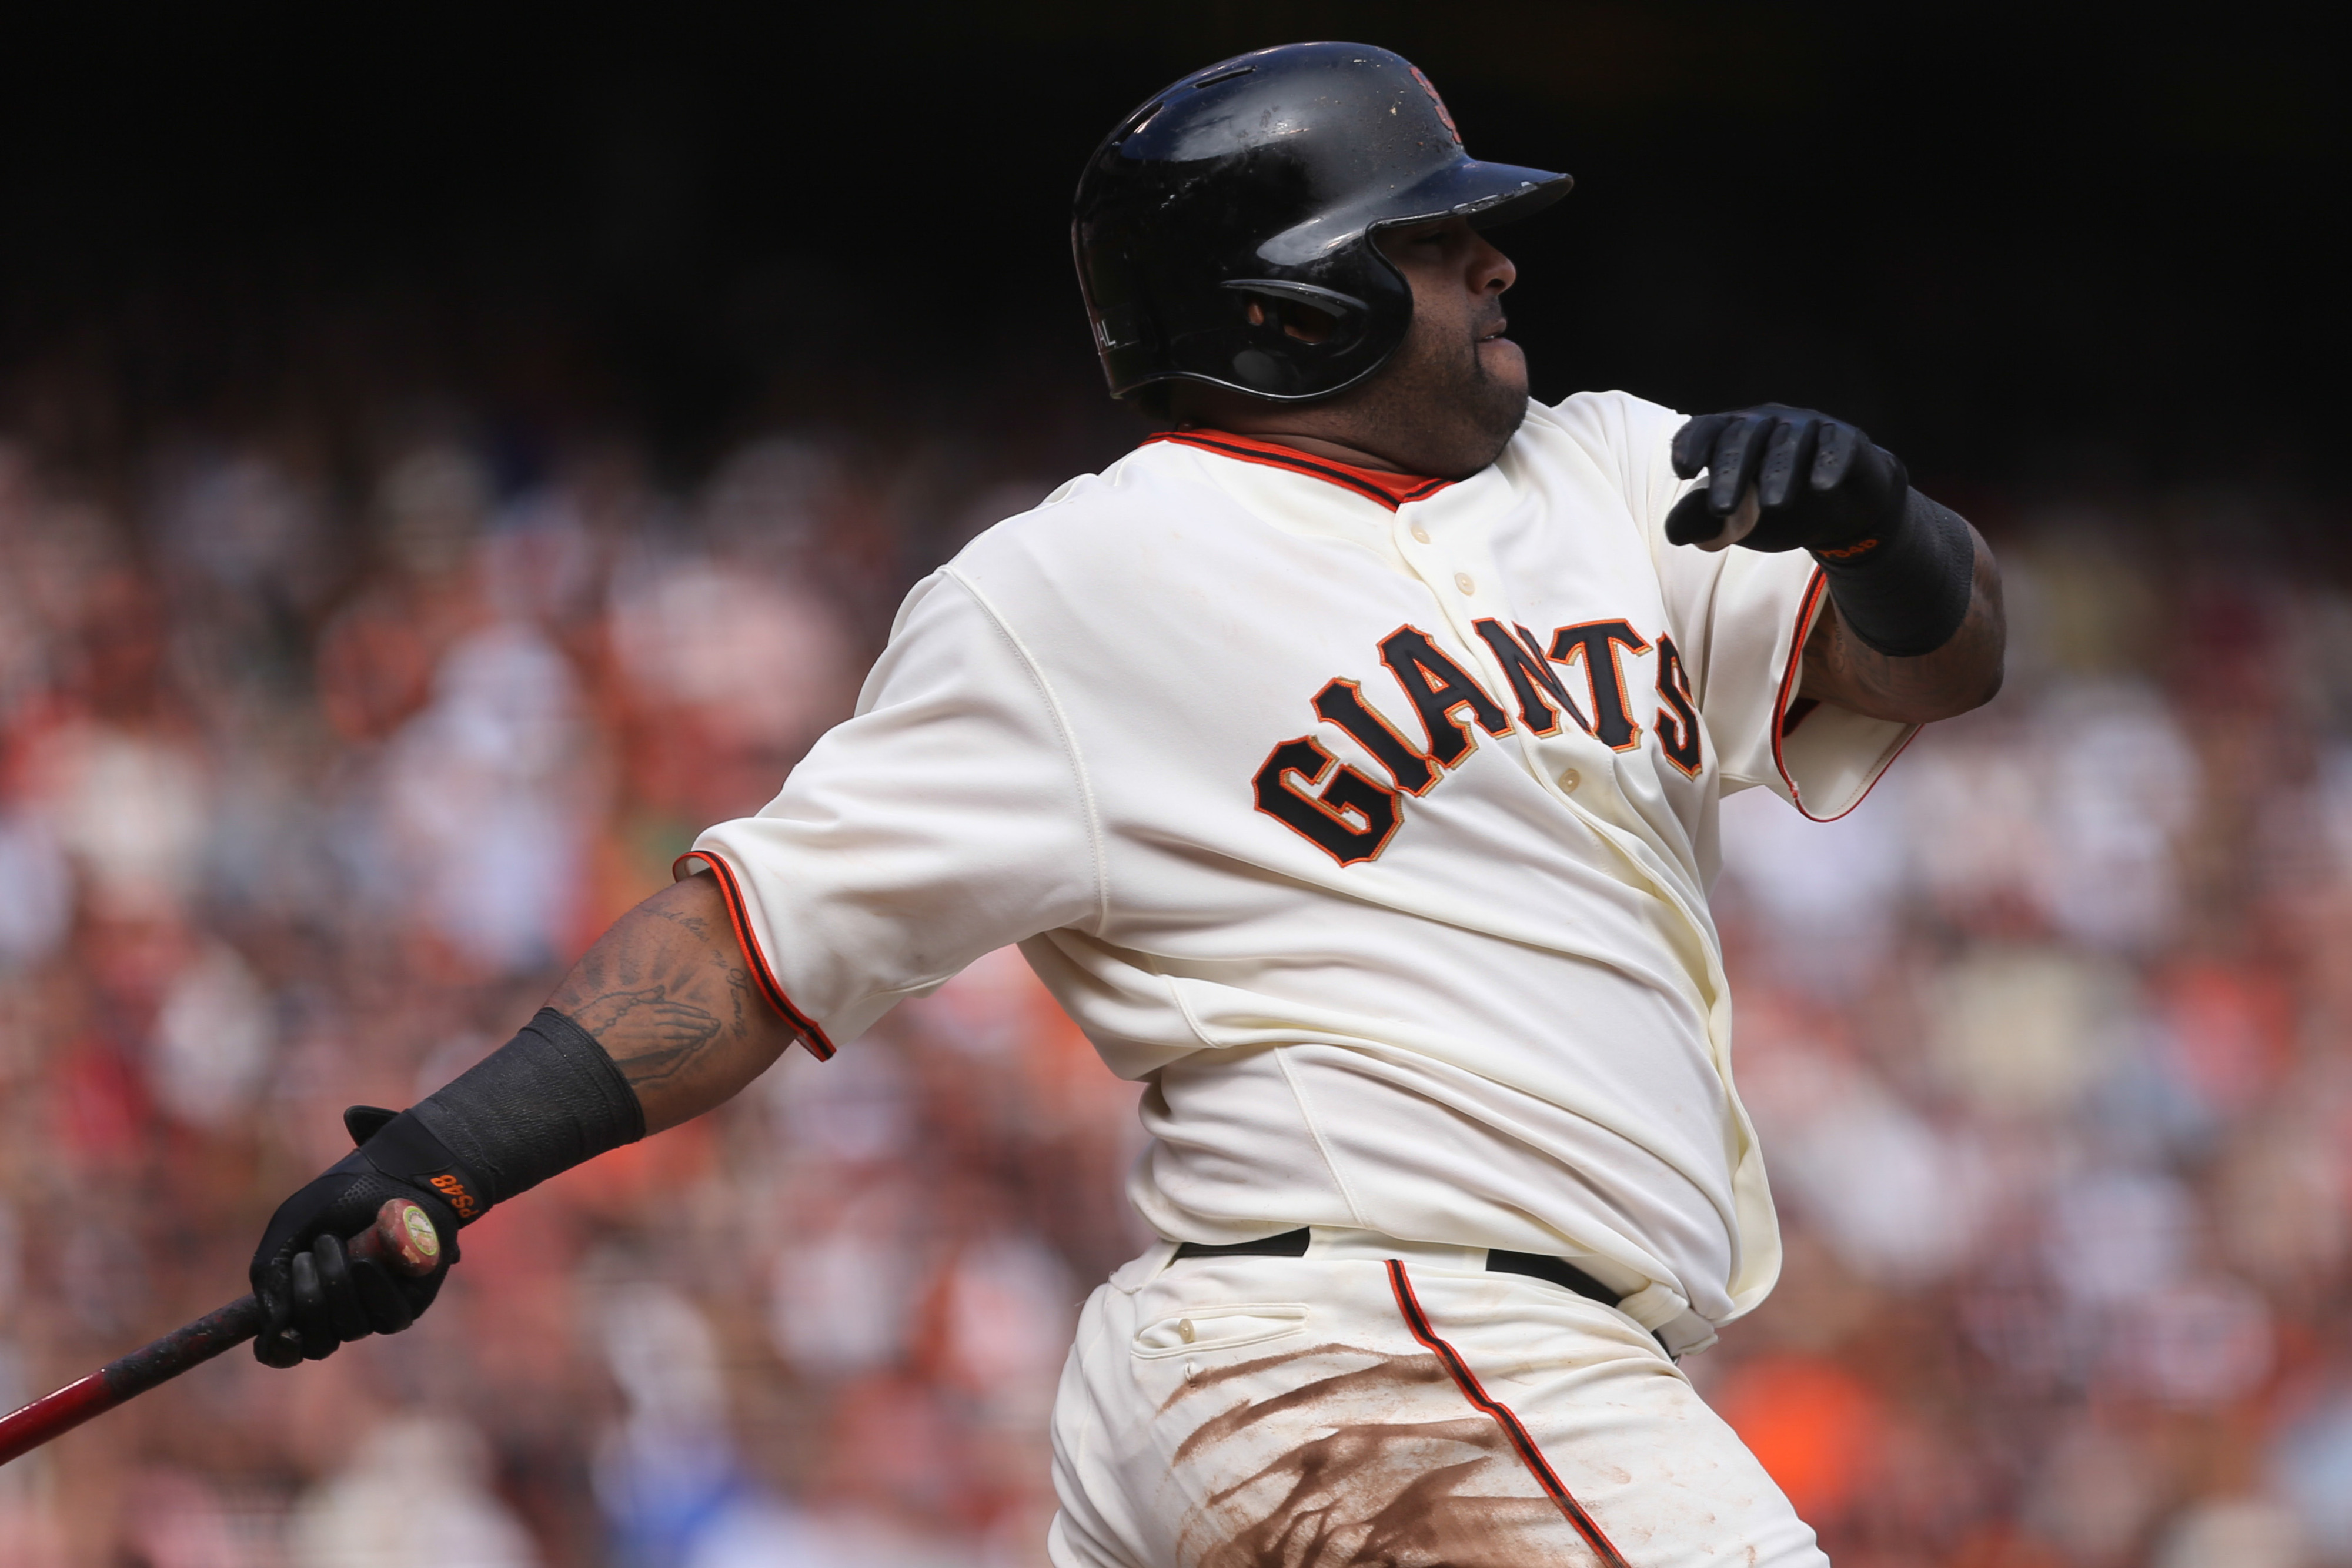 Red Sox inquired about Pablo Sandoval's availability